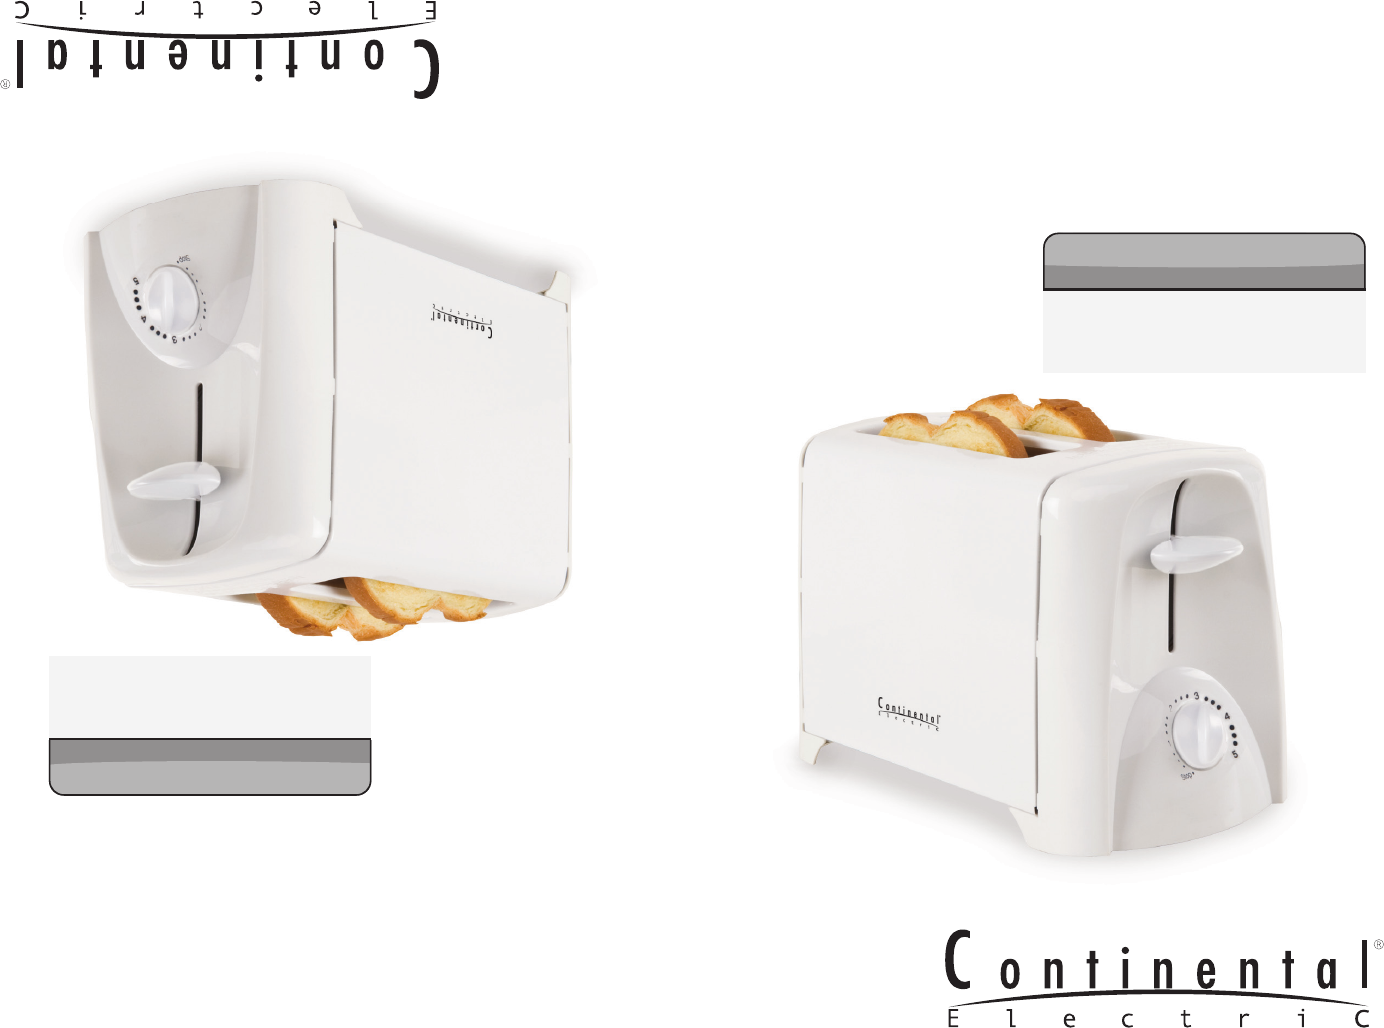 Continental Electric Toaster CE23401 User Guide ManualsOnline.com